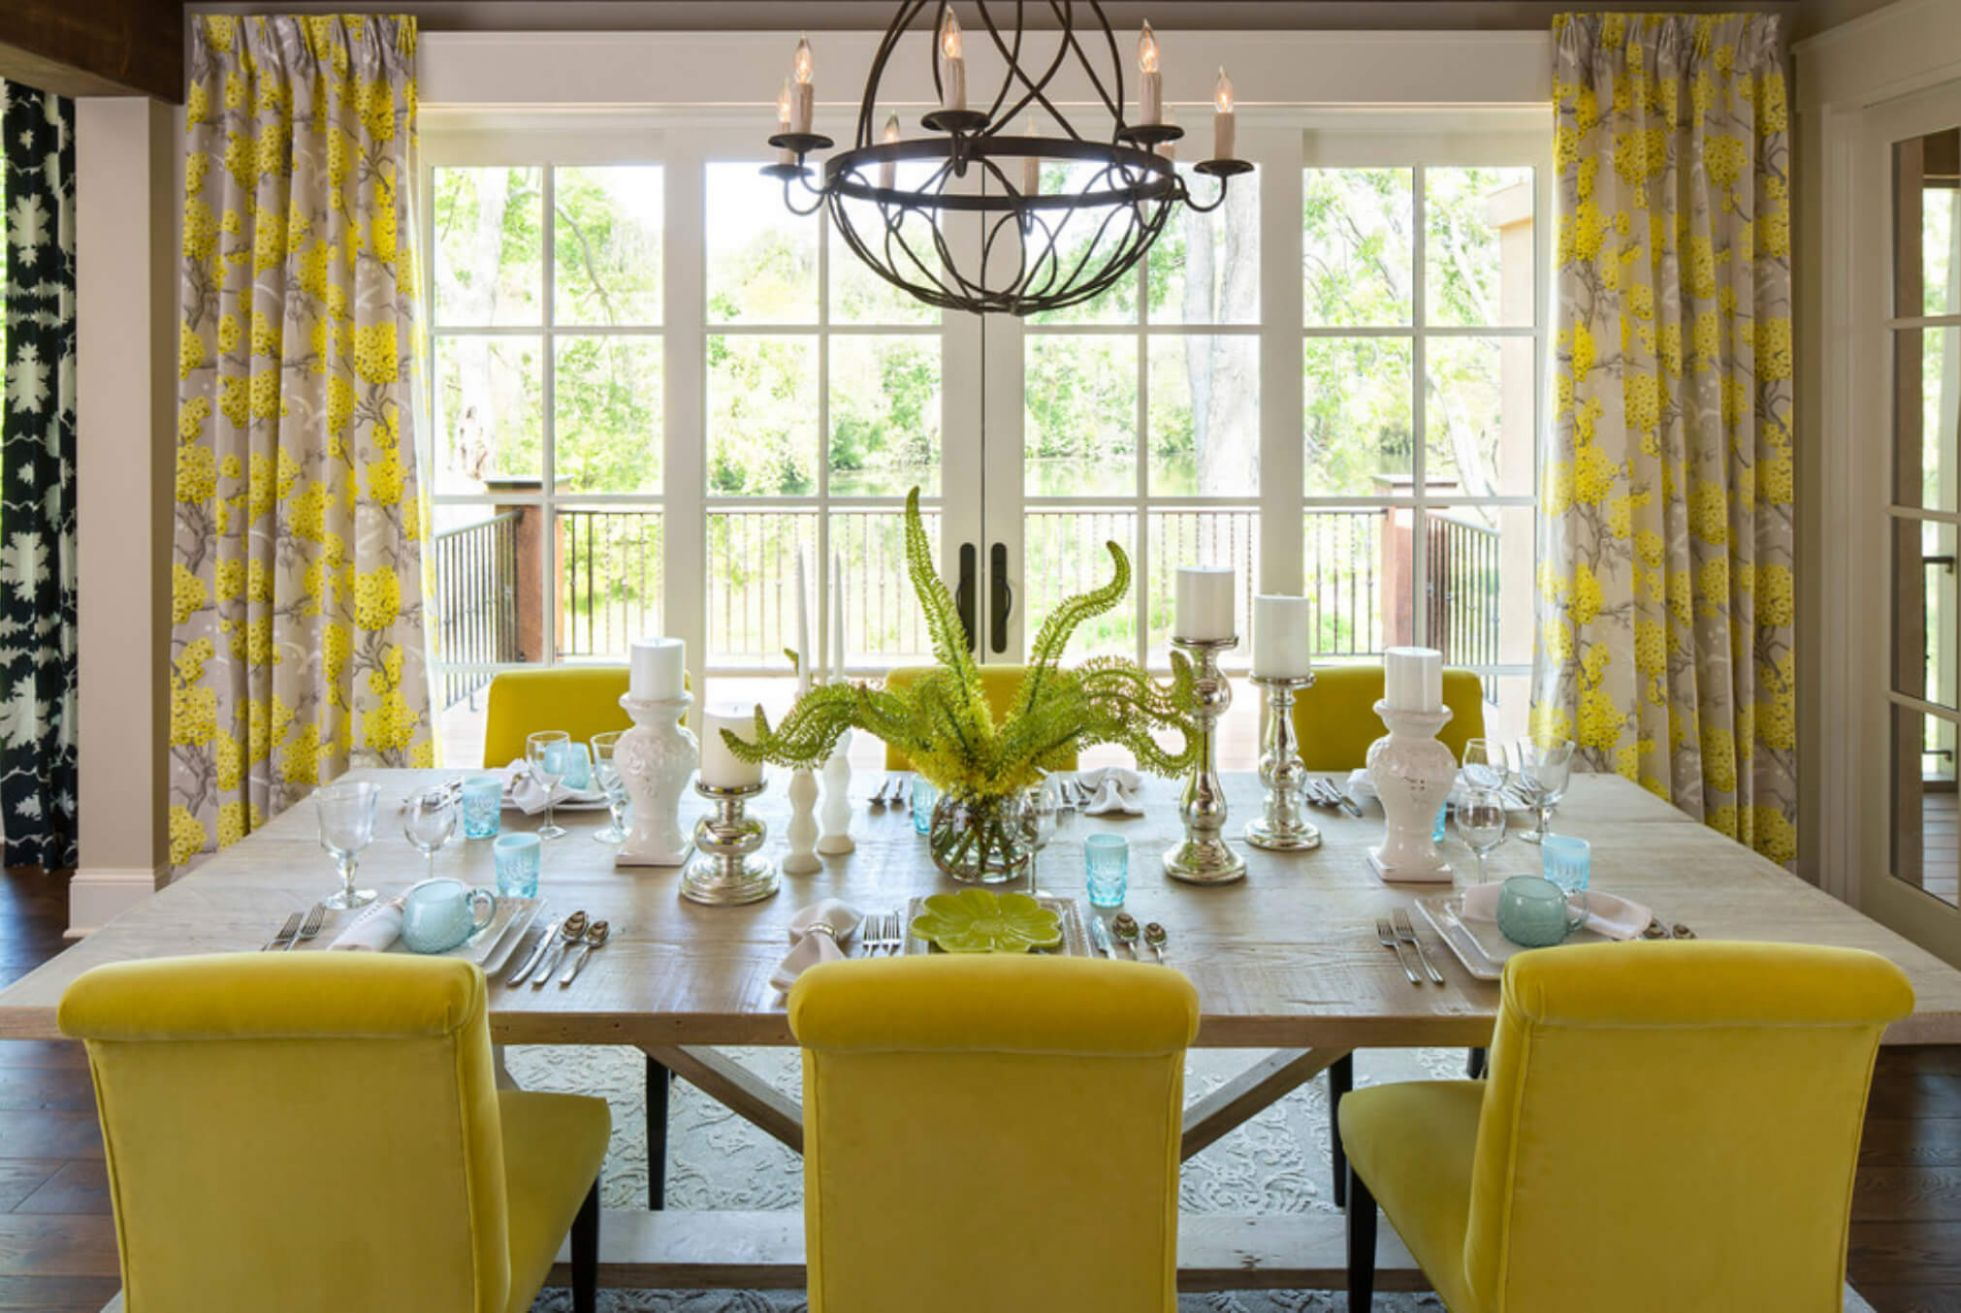 12 Creative Ideas for Dining Room Walls   Freshome